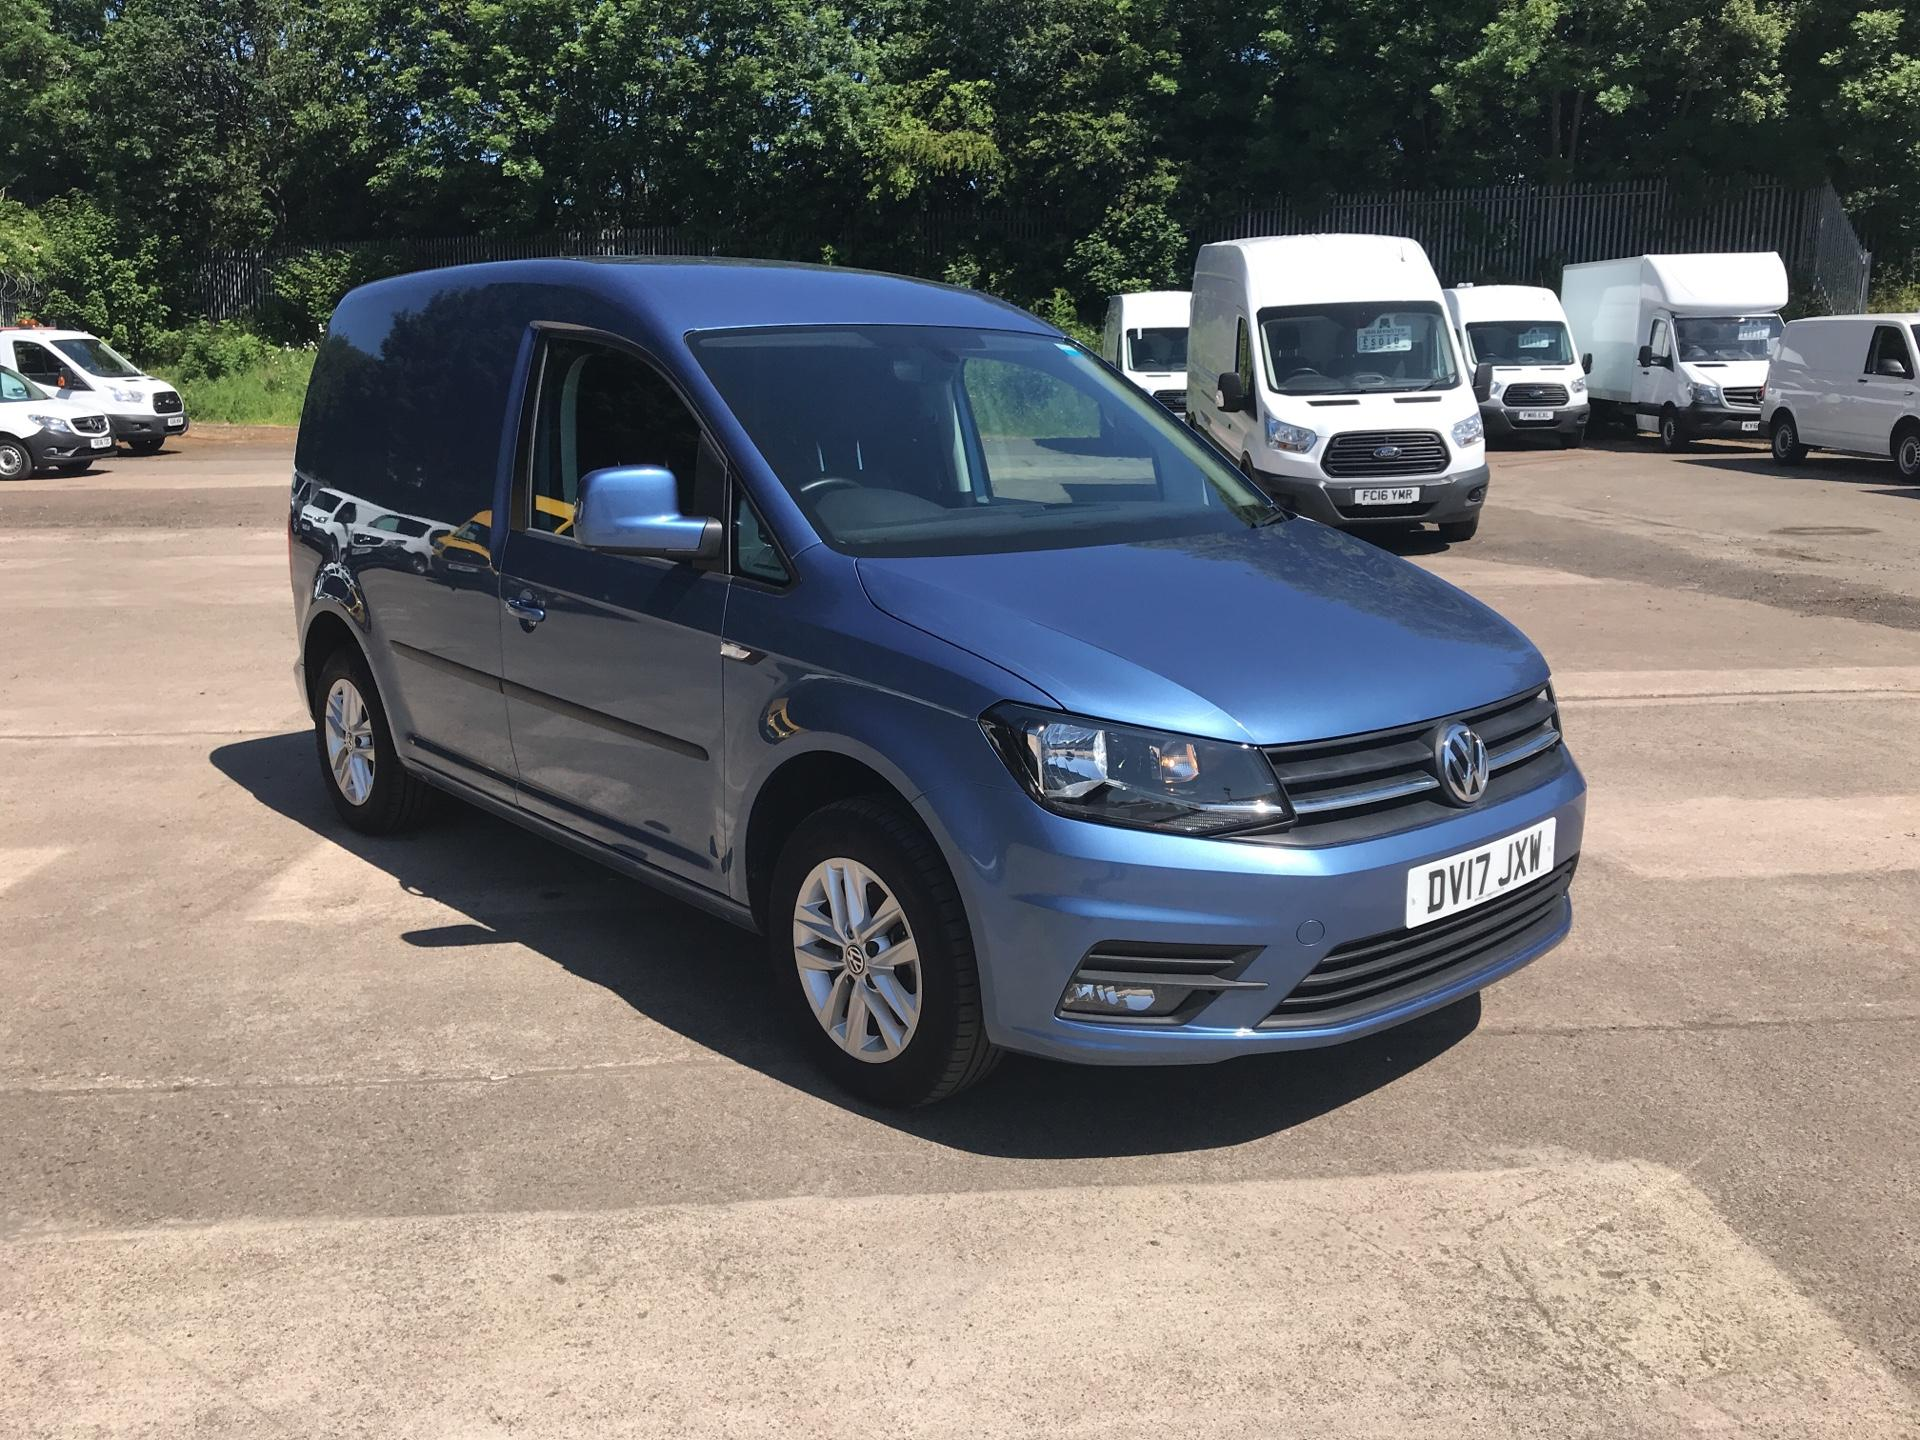 2017 Volkswagen Caddy 2.0 102PS BLUEMOTION TECH HIGHLINE EURO 6 (DV17JXW)